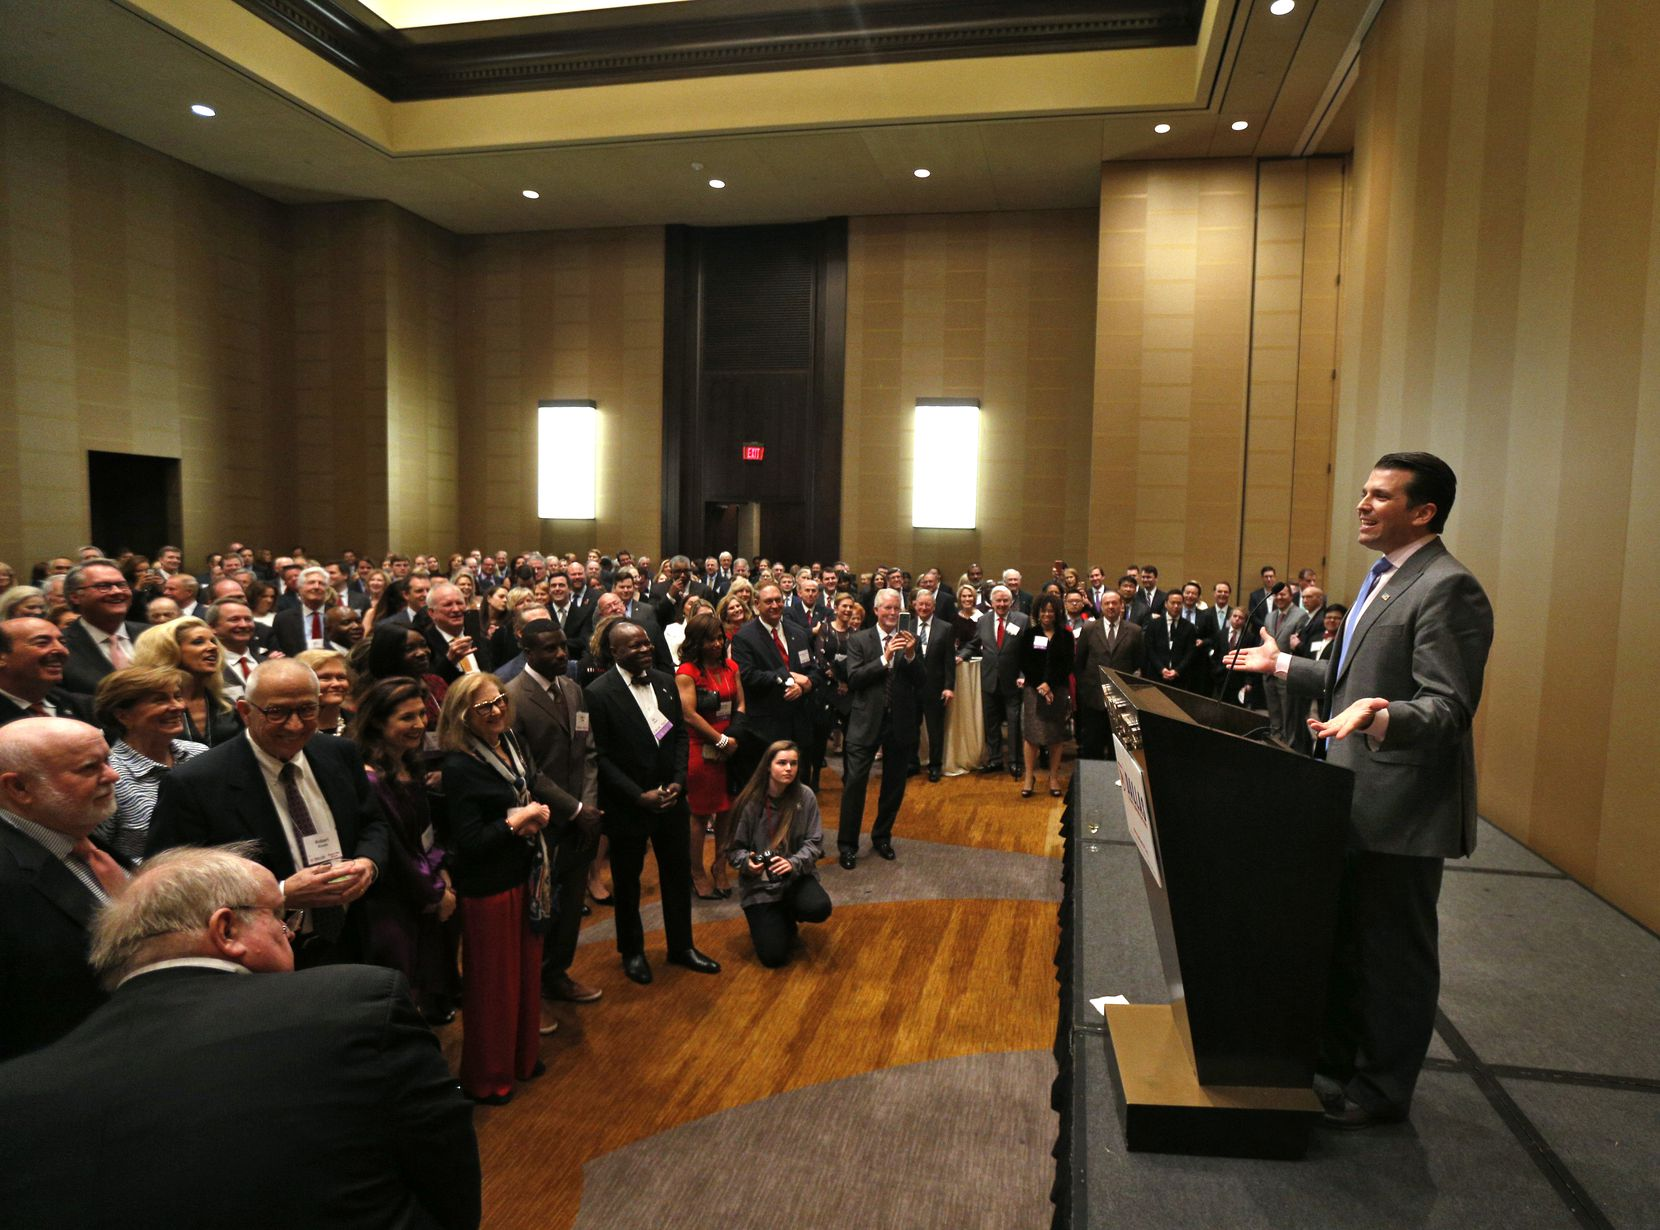 In March 2017, Donald Trump Jr. greeted donors at a VIP reception before the Dallas County Republican Party's Reagan Day Dinner where he gave a keynote address, at the Omni Dallas Hotel in Dallas.